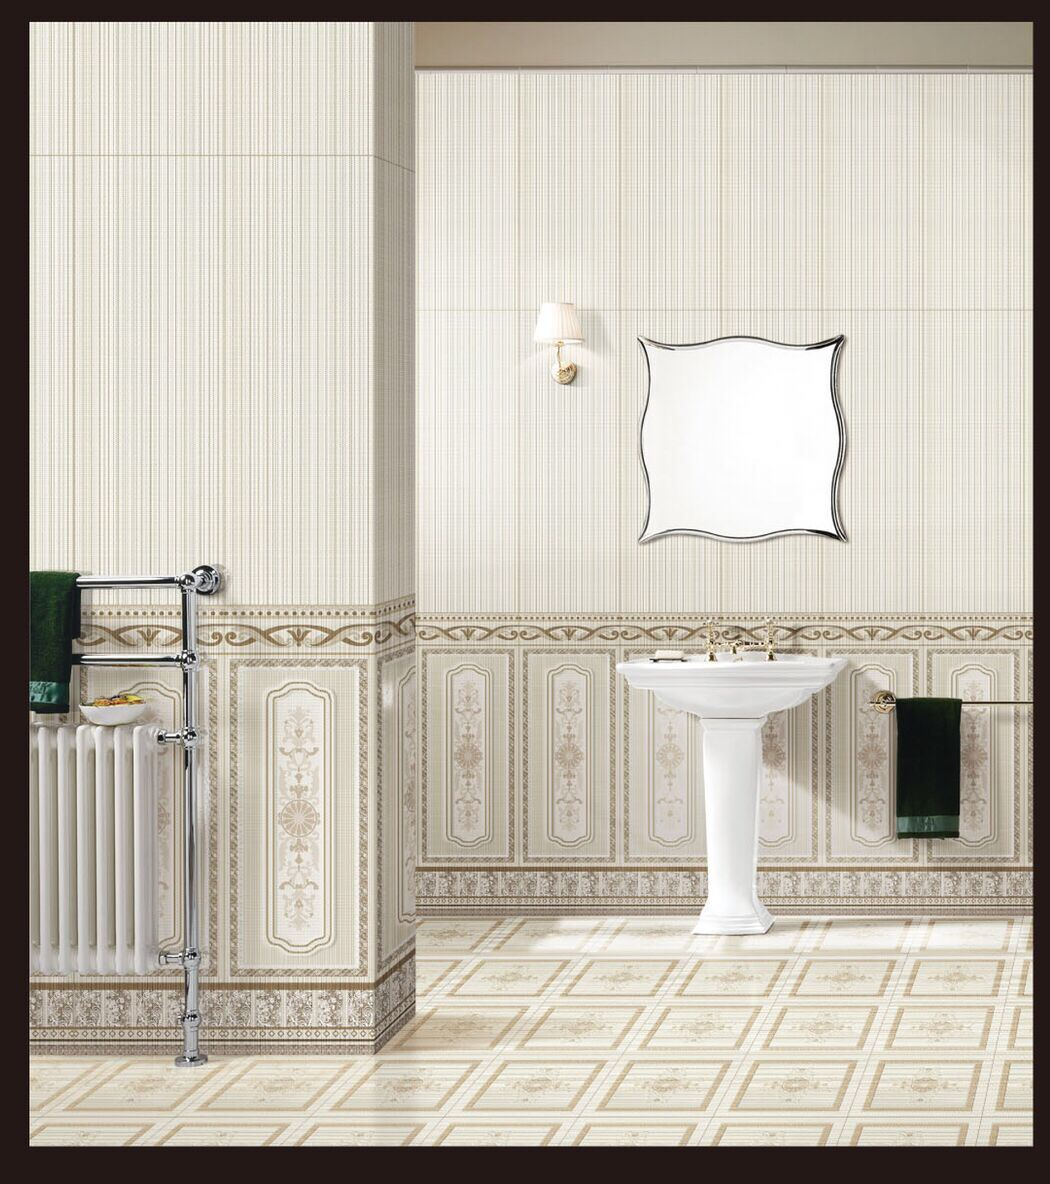 China 300X900 Ceramic Glazed Bathroom Wall and Floor Tile in ...